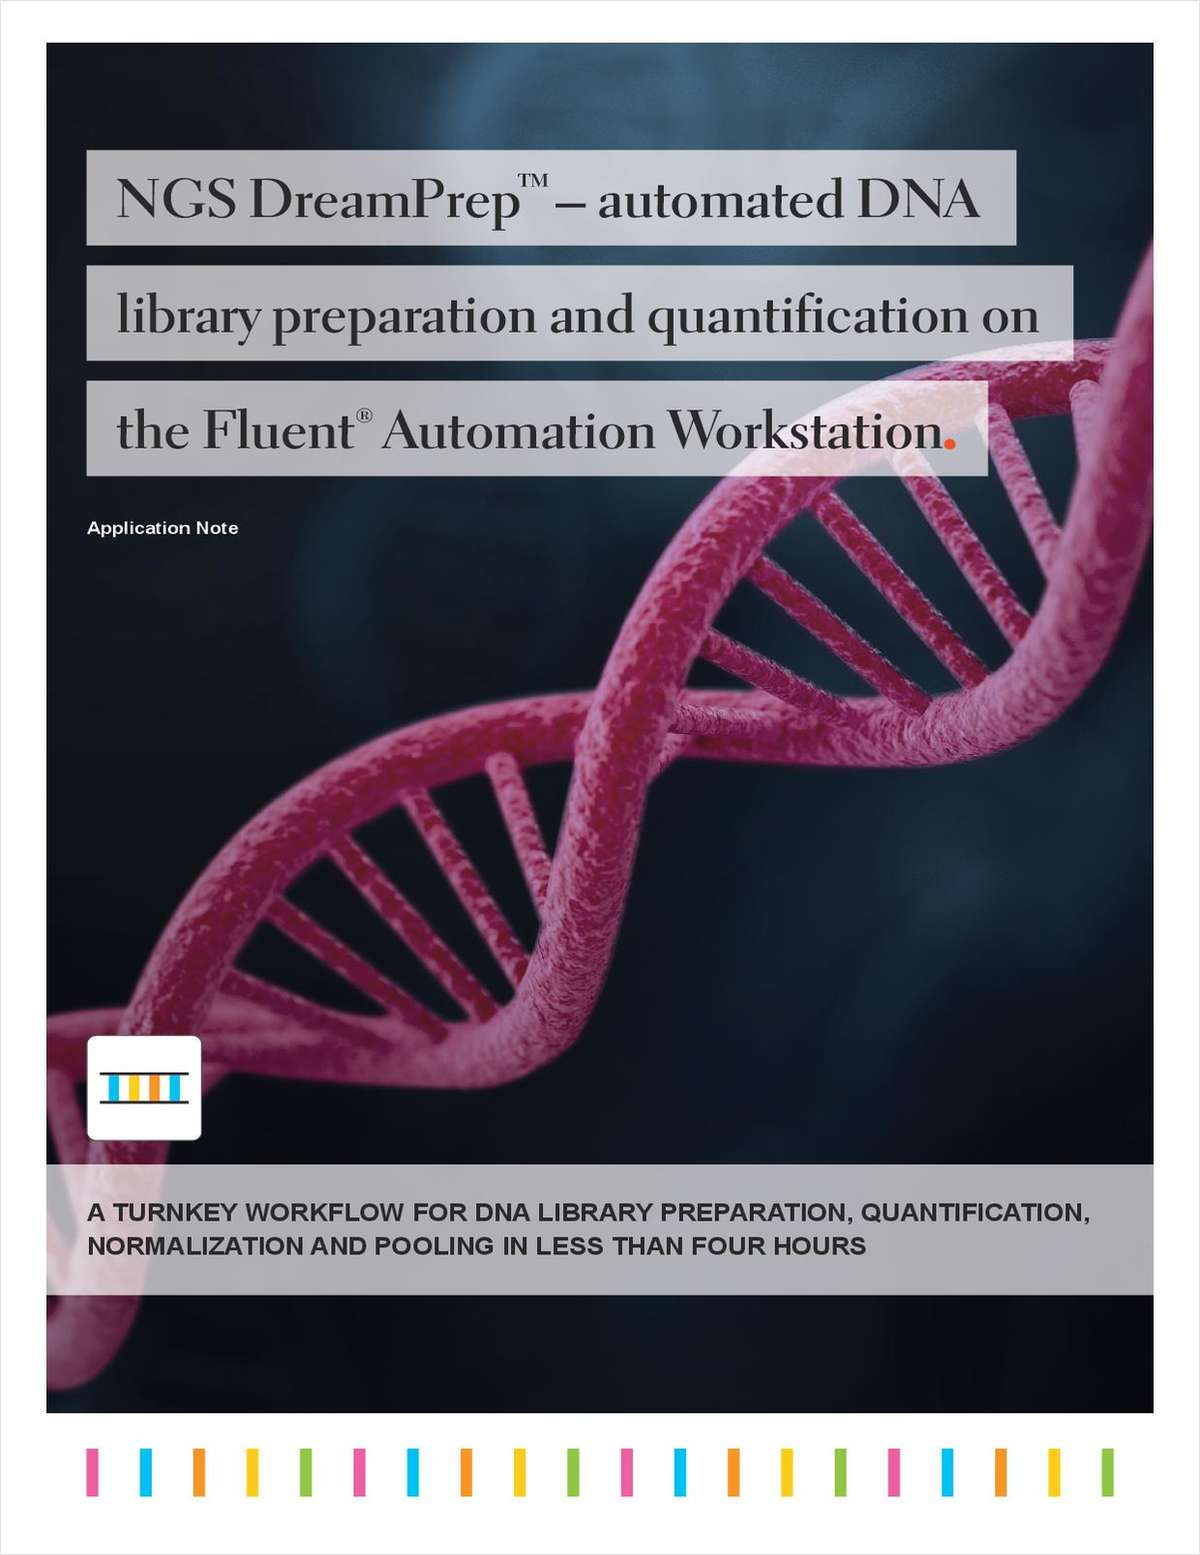 NGS DreamPrep: Automated DNA Library Preparation and Quantification on the Fluent Automation Workstation